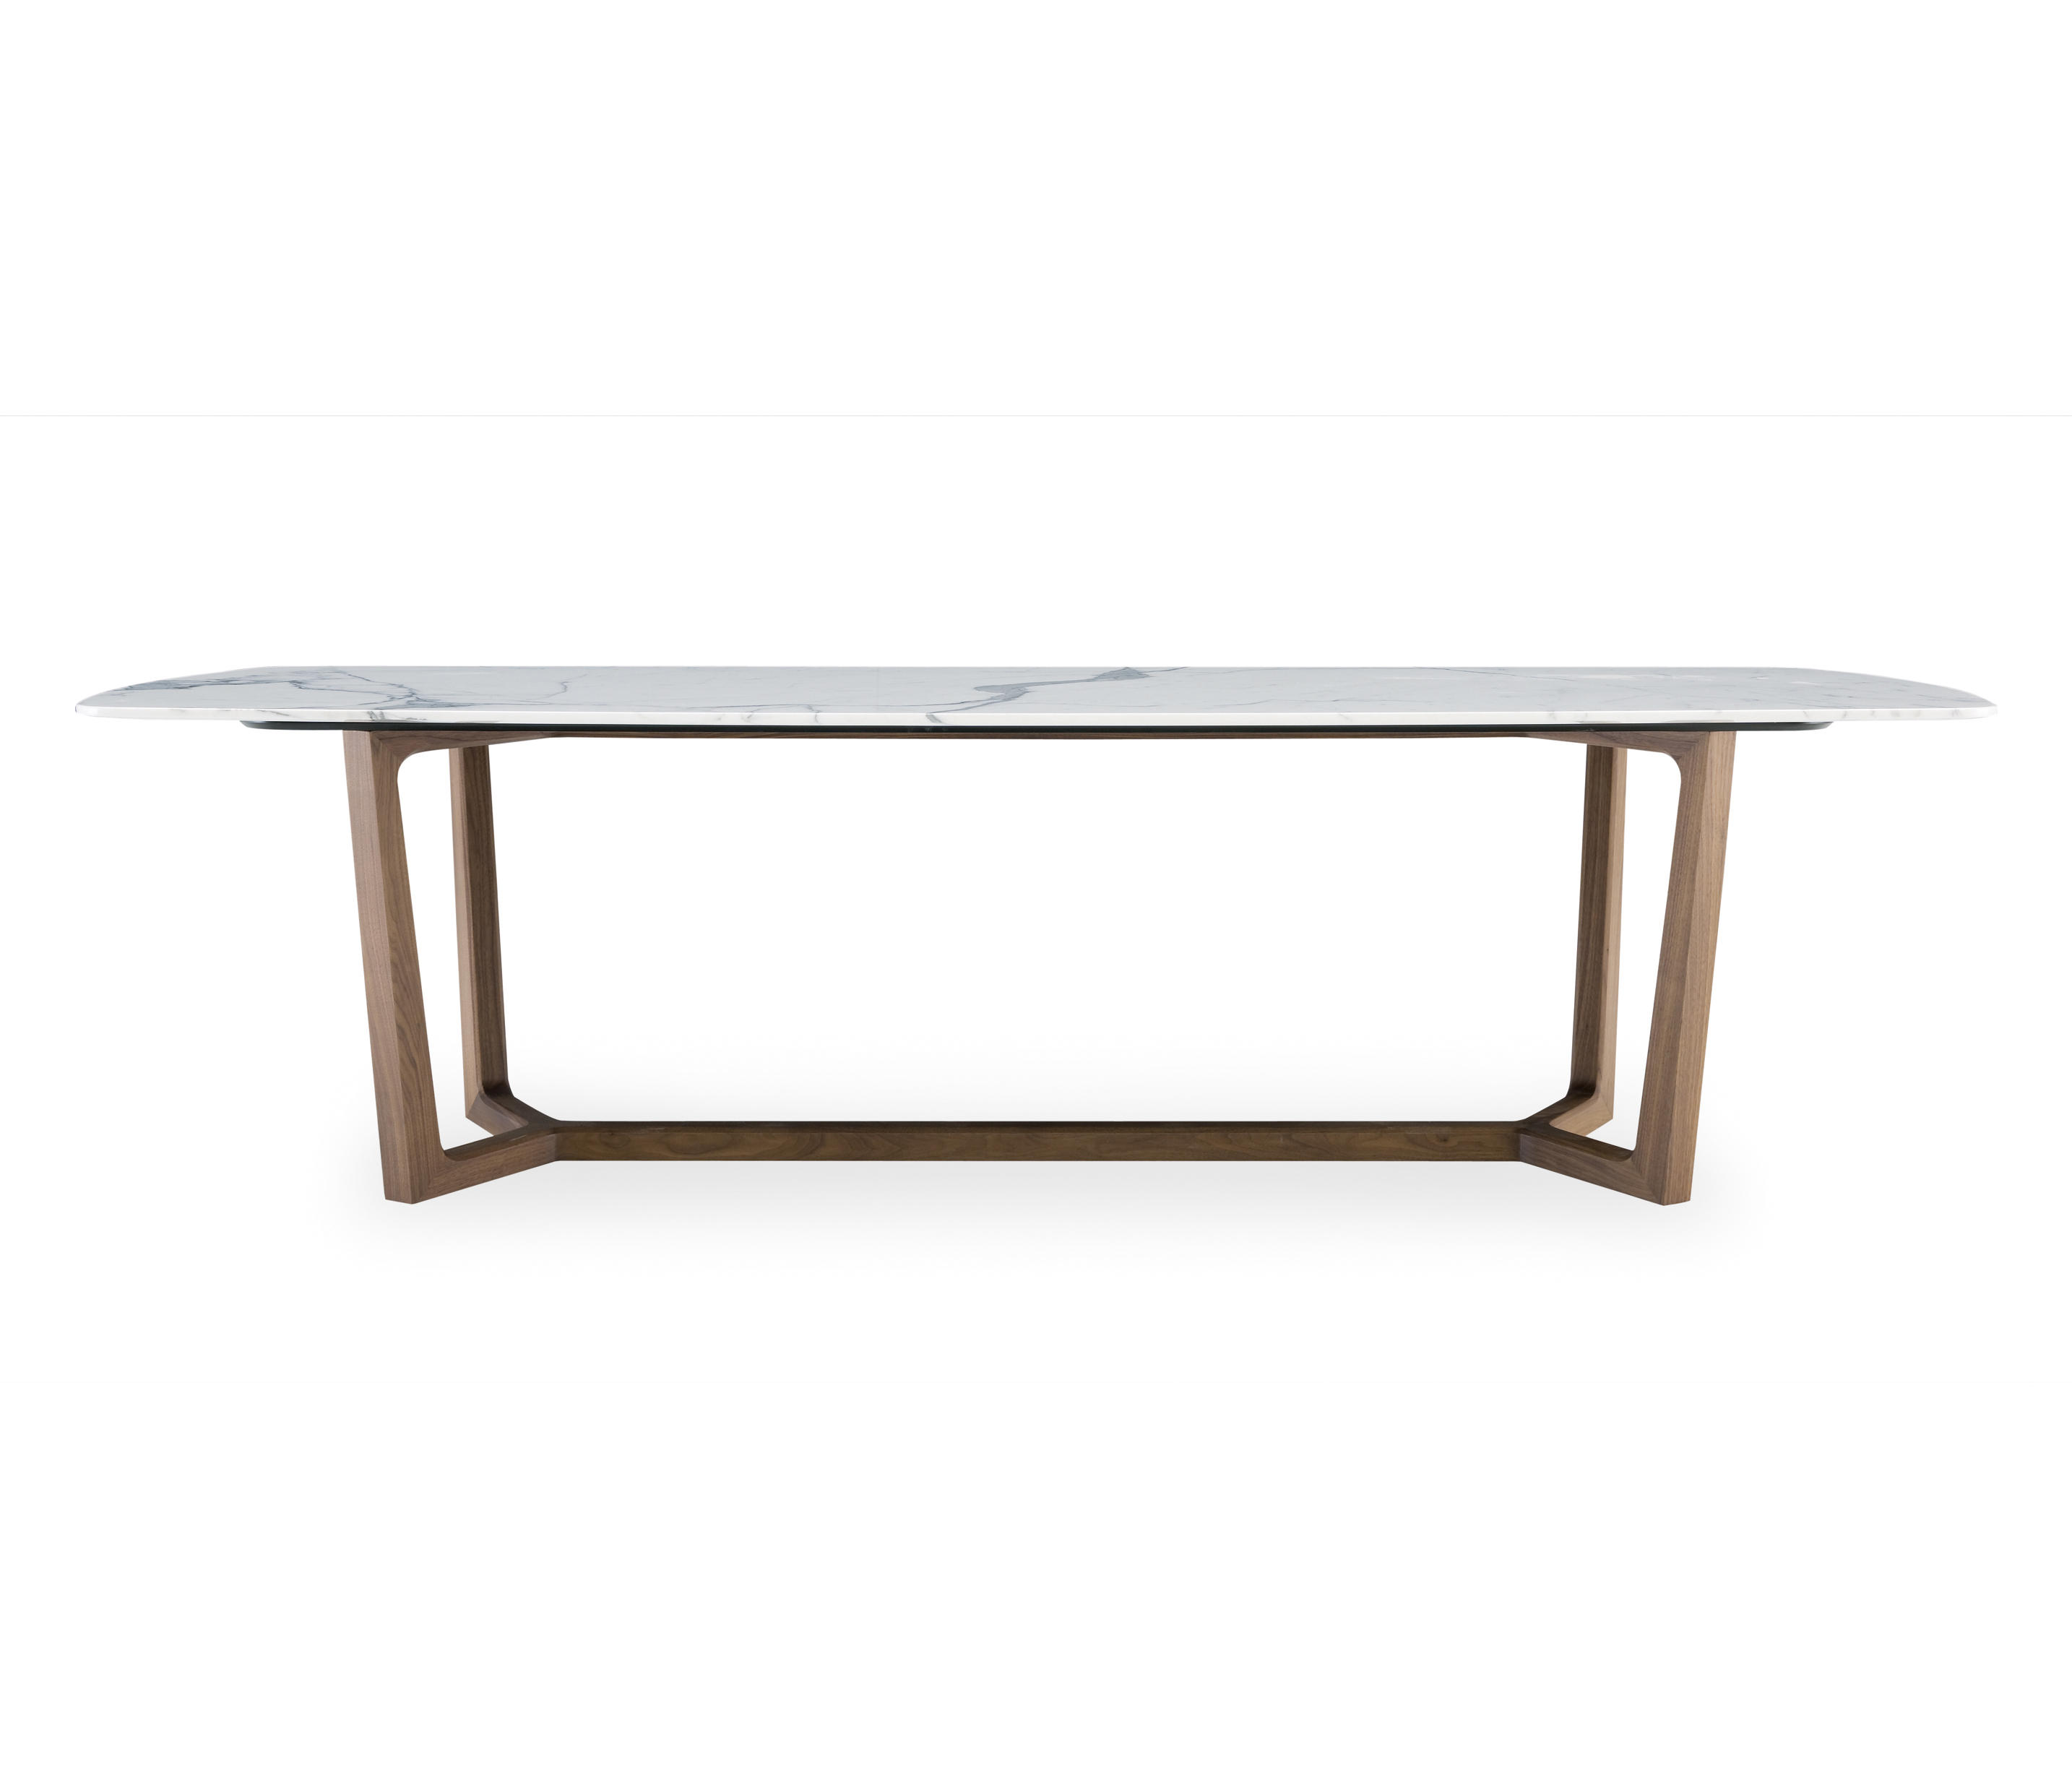 Concorde table dining tables from poliform architonic - Table ronde pied central inox ...